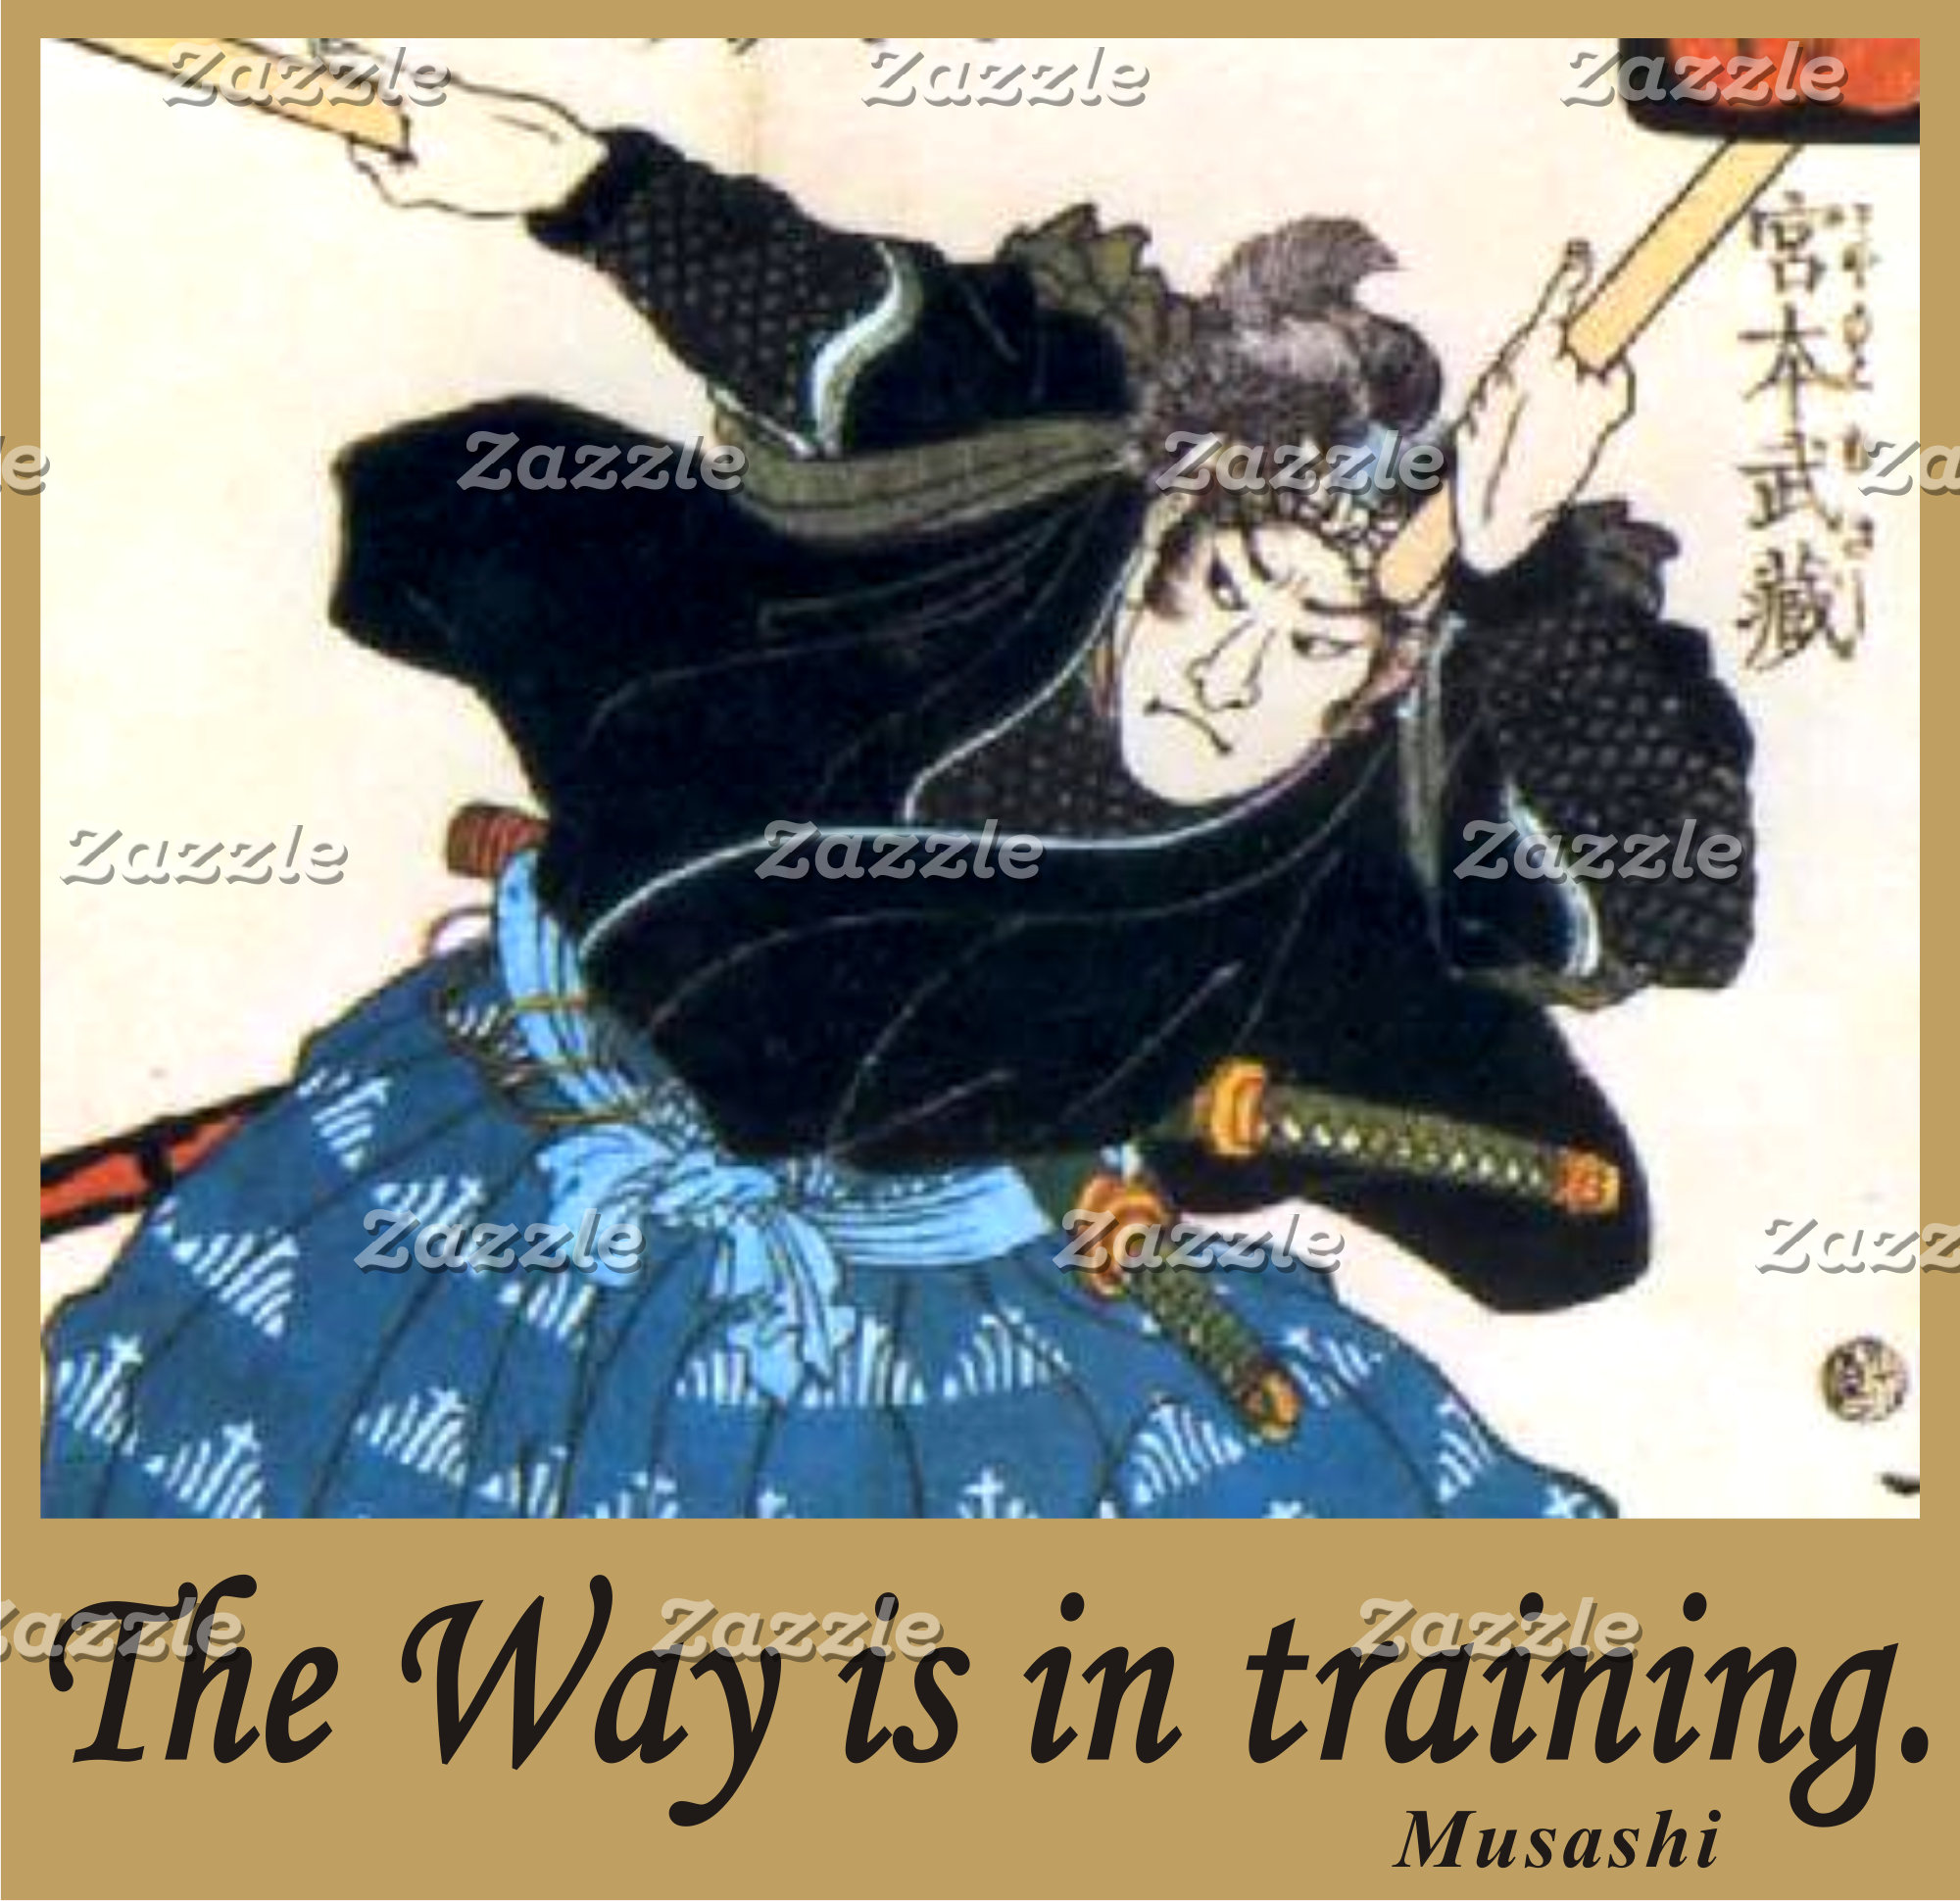 Musashi - The Way is in training